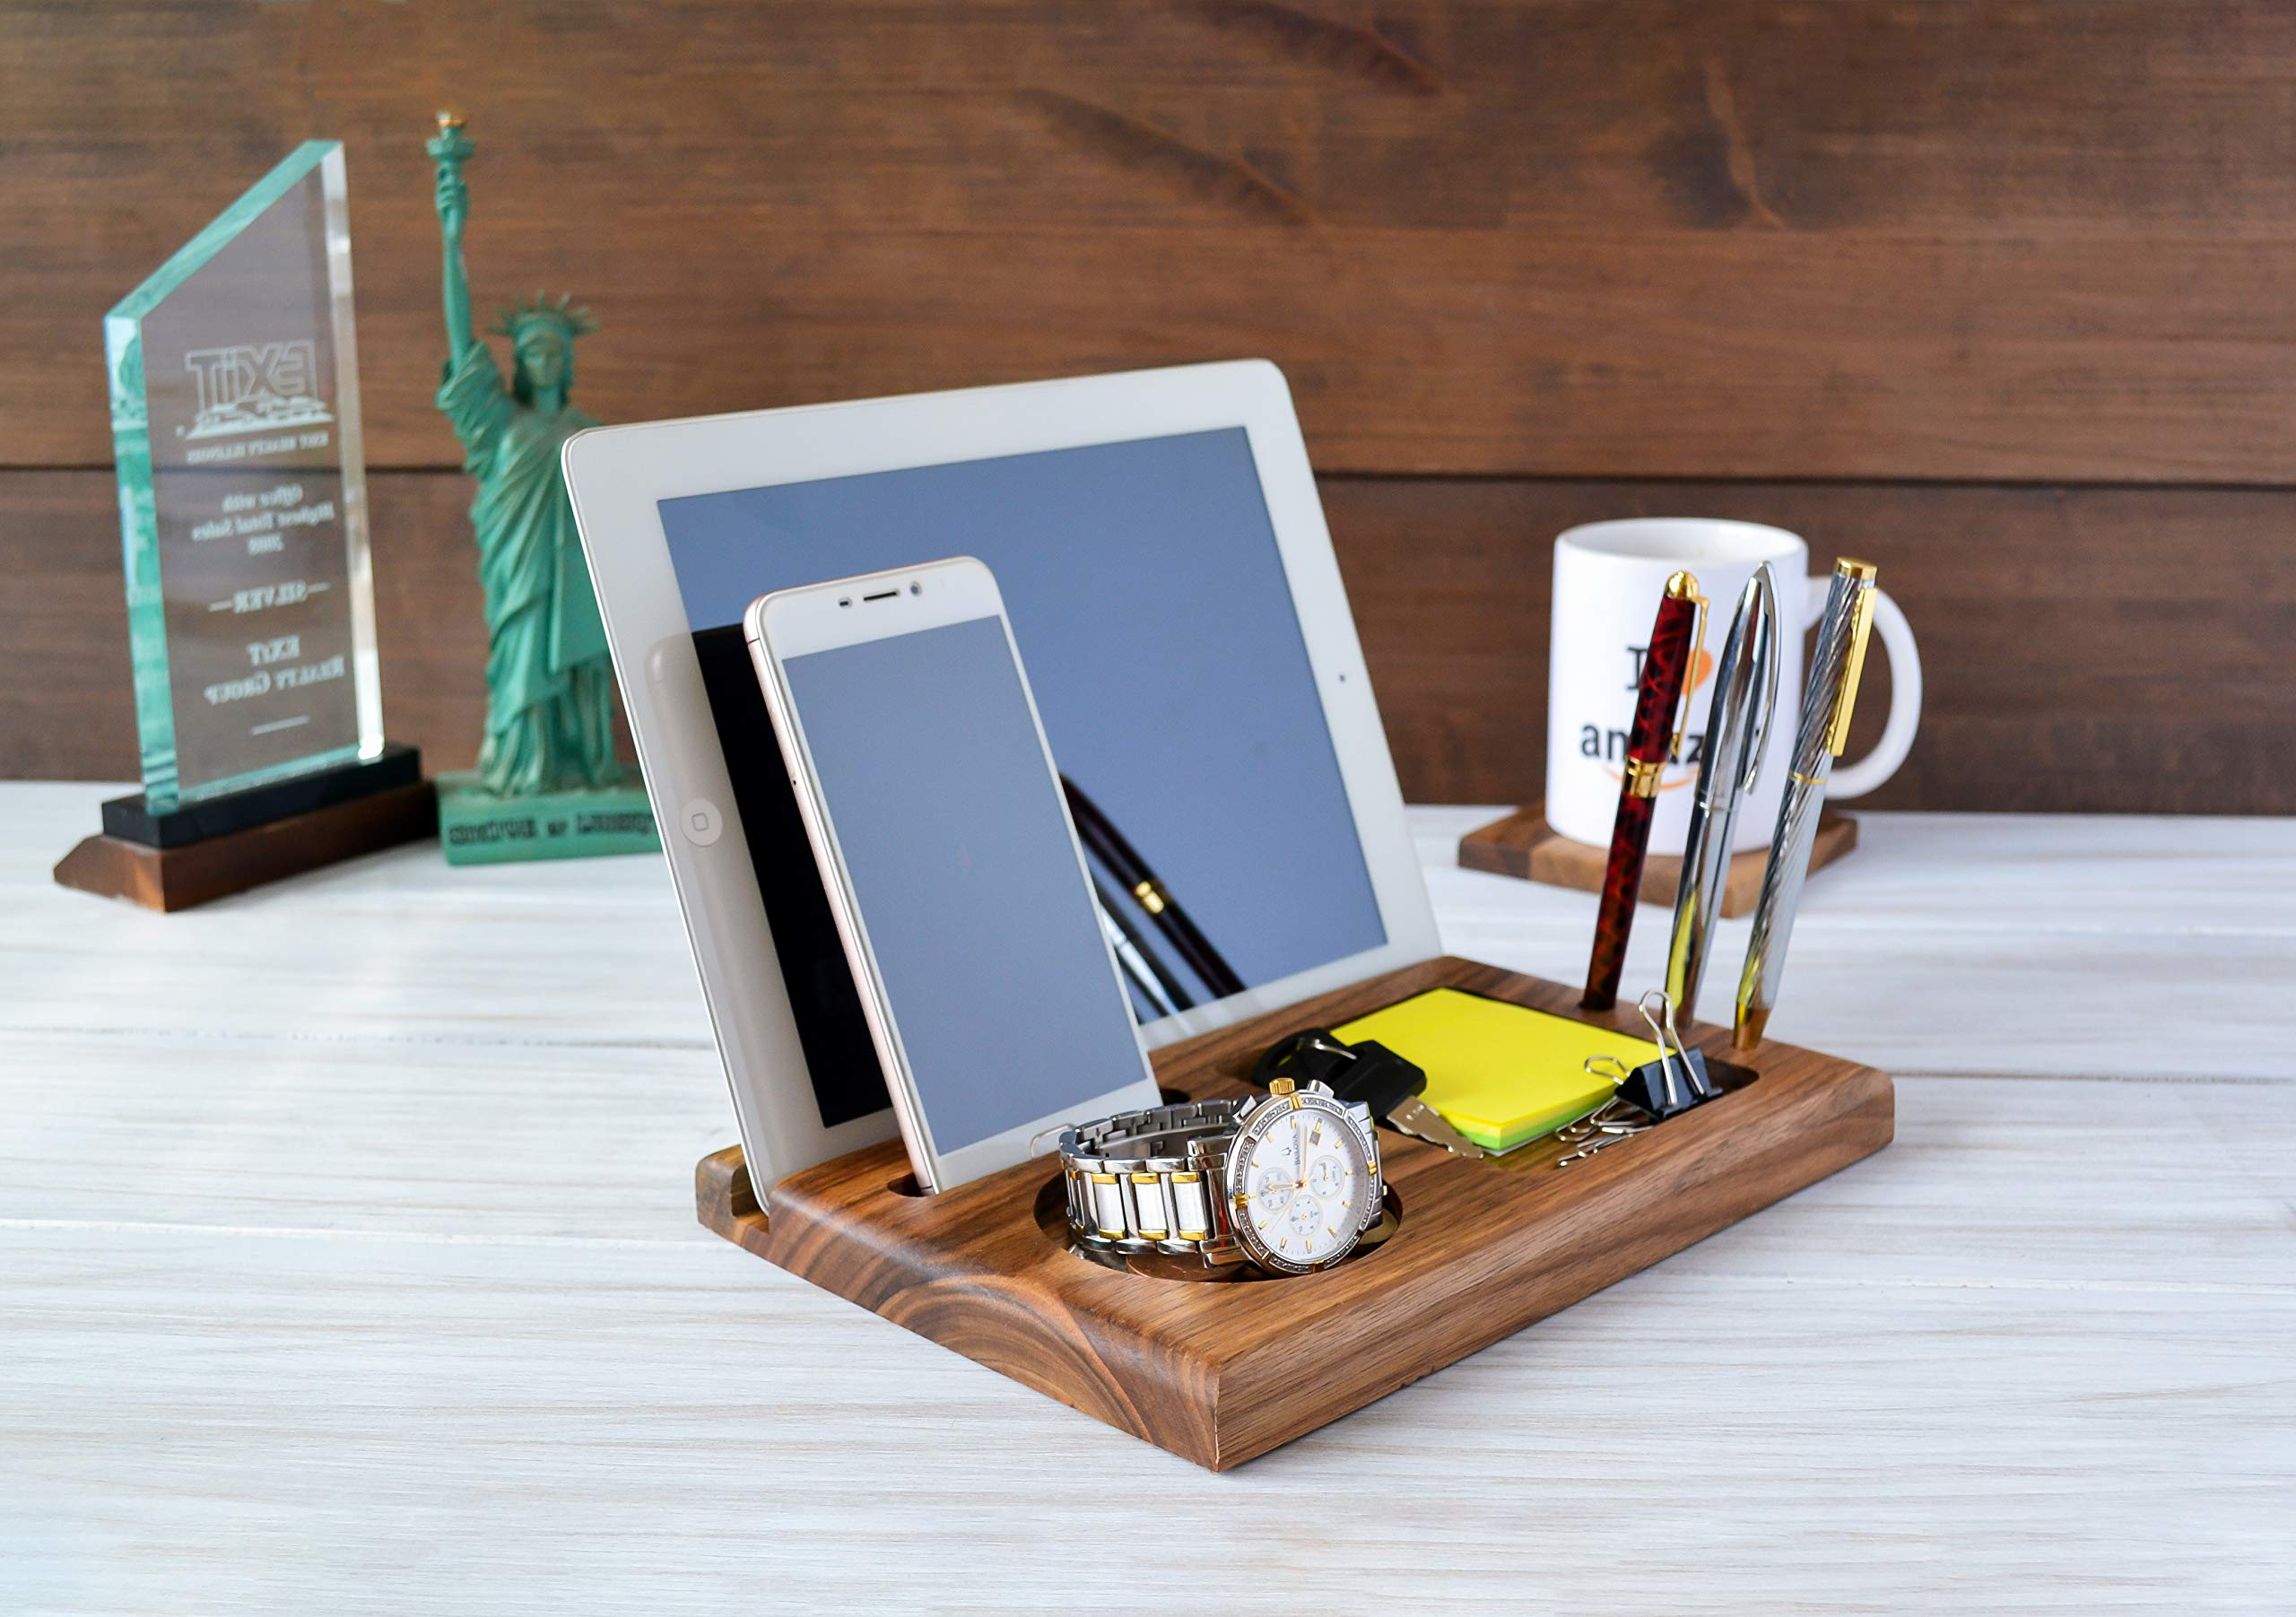 Wood-Phone-Docking-Station-with-Key-Holder-Wallet-Stand-and-Watch-Organizer-Mens-Gift-Iphone-Android-iPhone-6s-plus-6s-6-plus-6-5-5s-4-Samsung-Galaxy-For-Daily-Use-Handmade